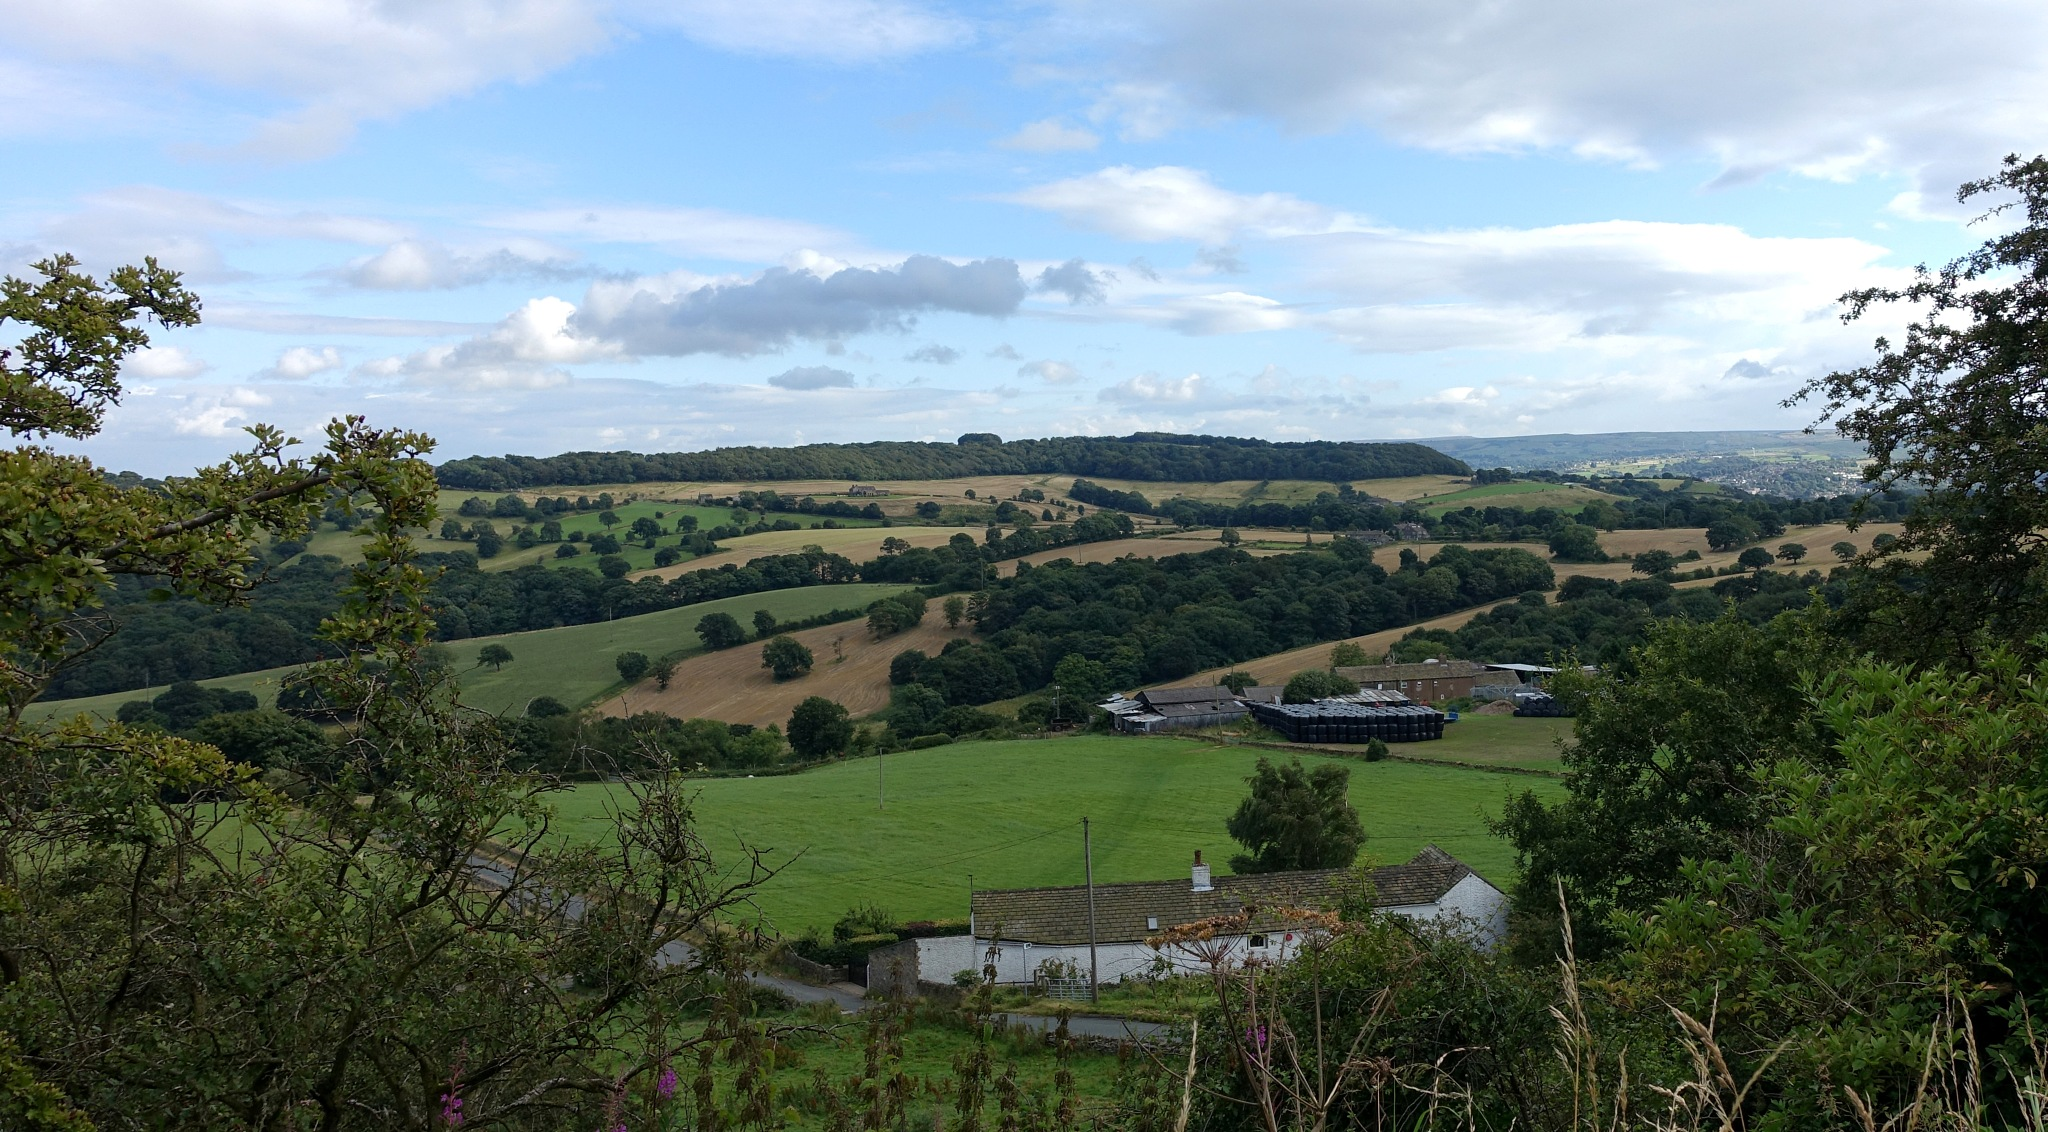 View from Castle Hill by kayThornton